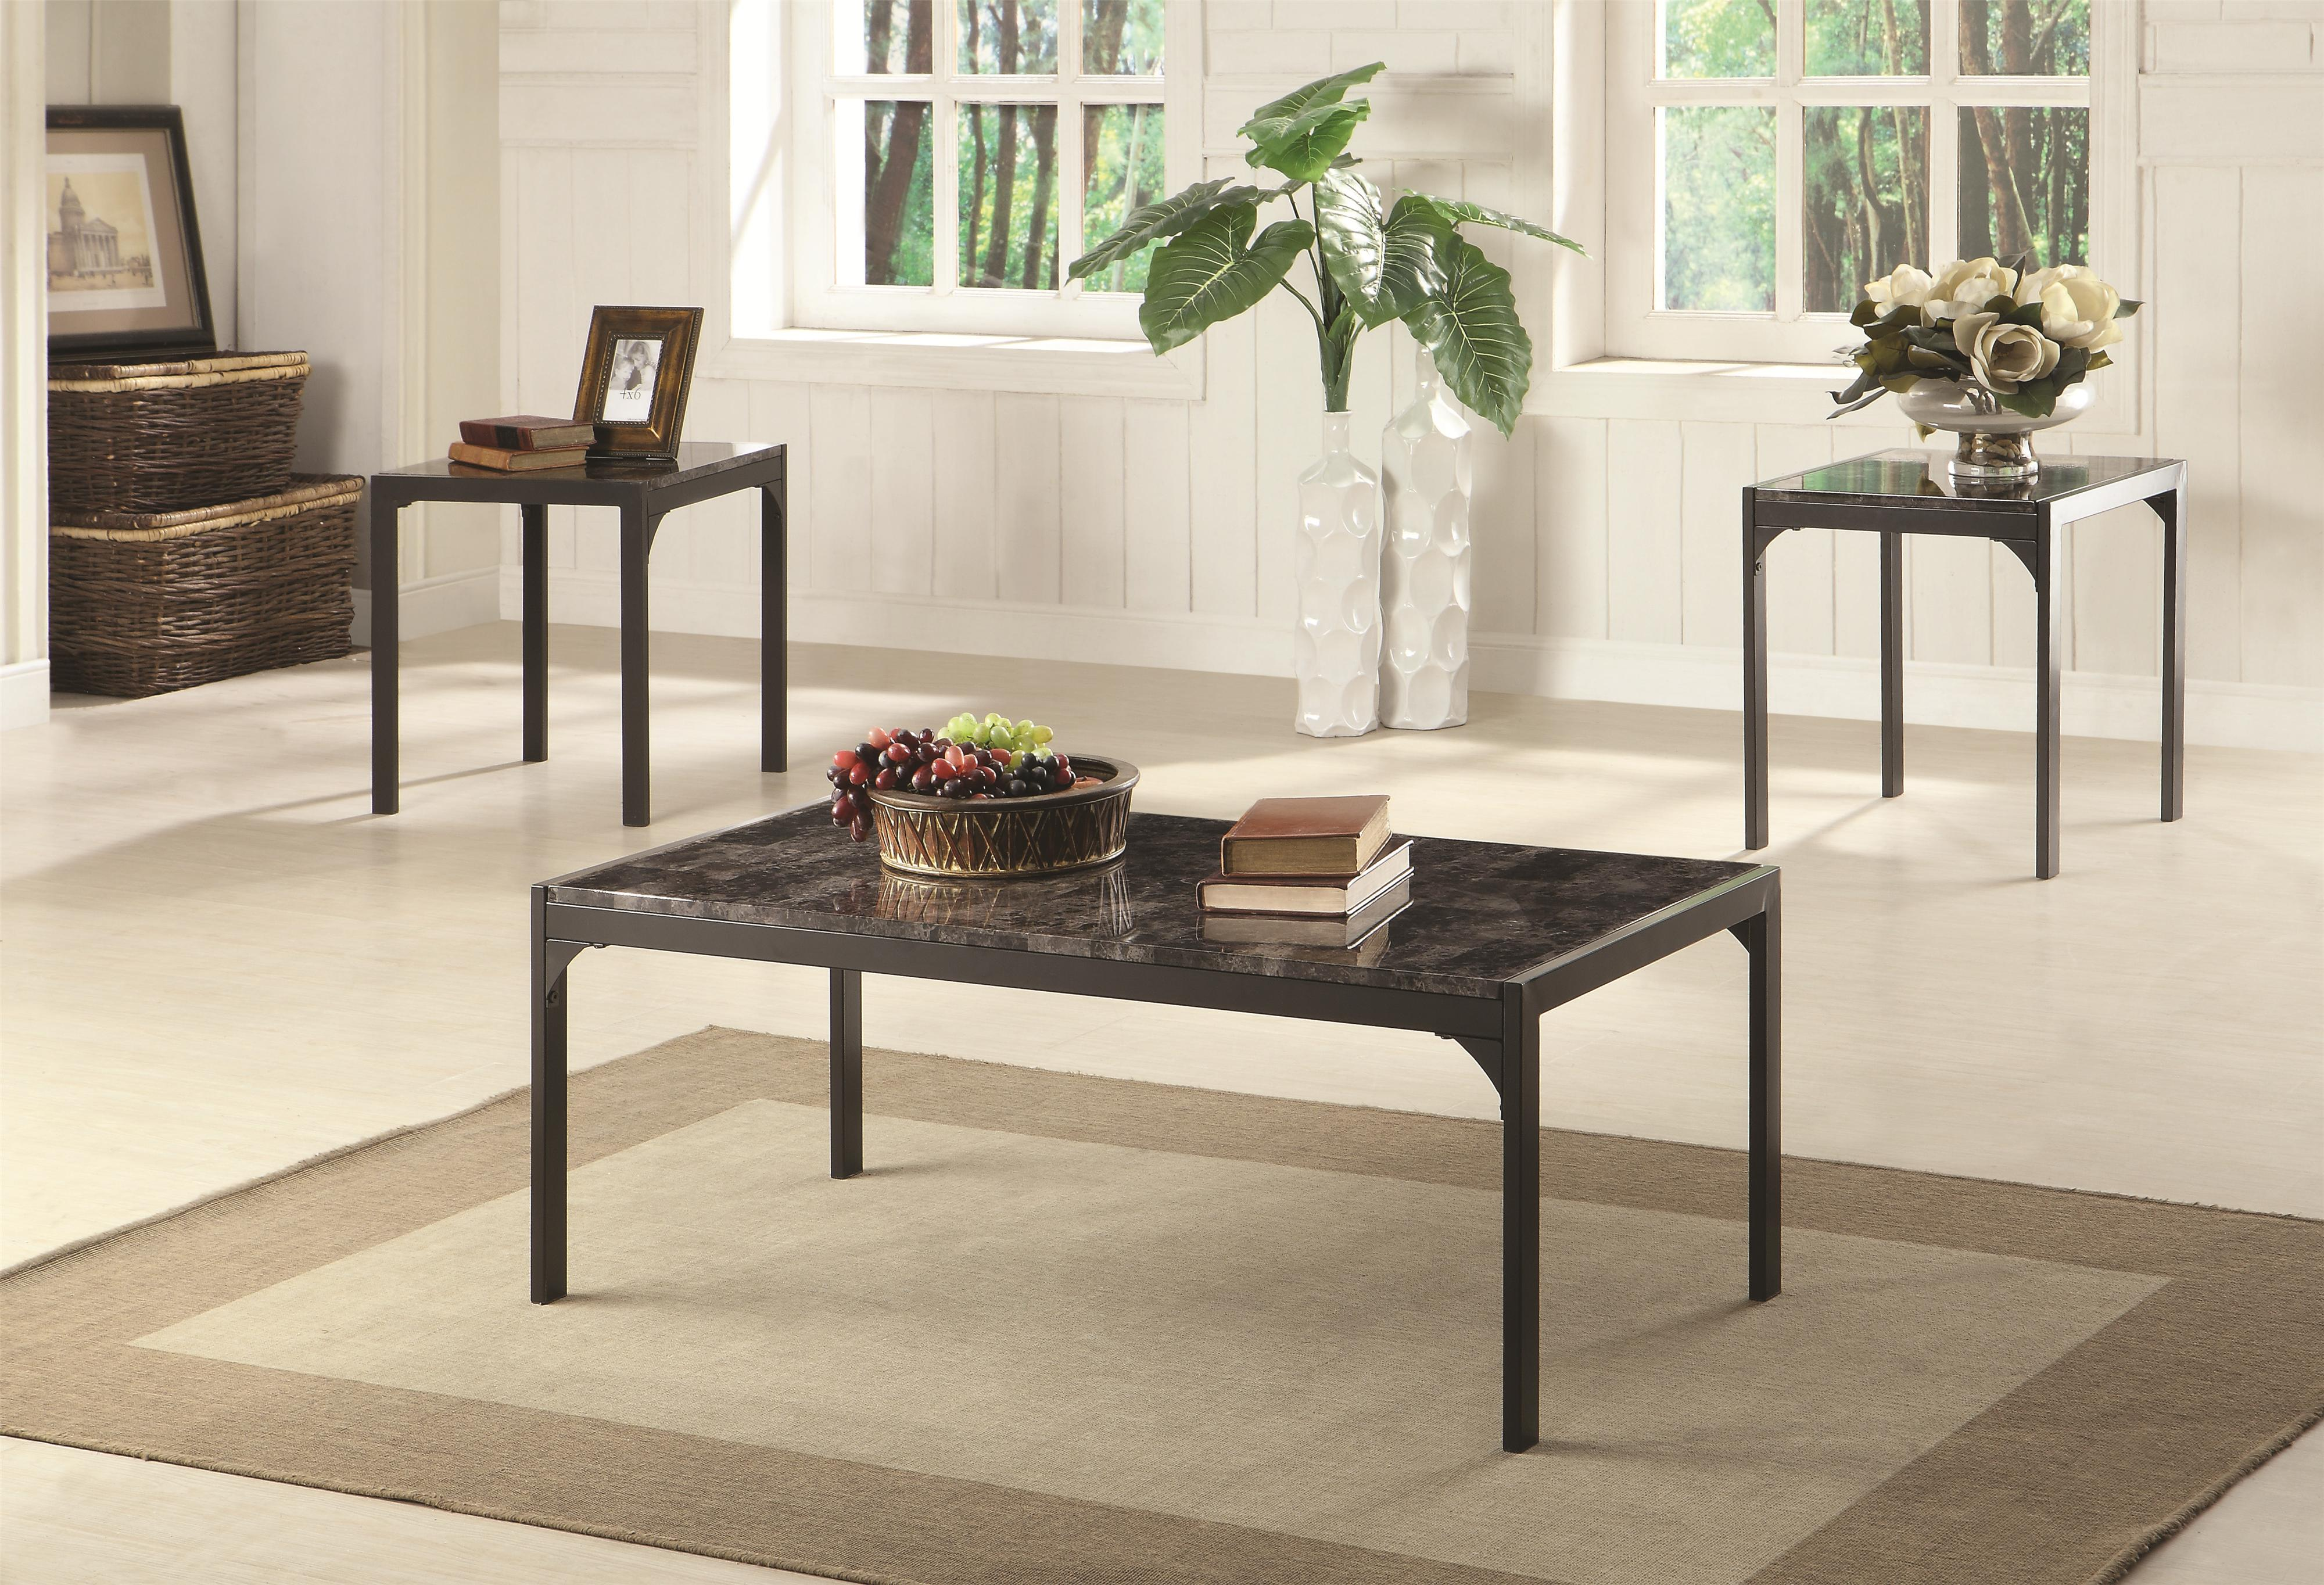 Coaster Occasional Table Sets Modern Coffee Table and End Table Set ...